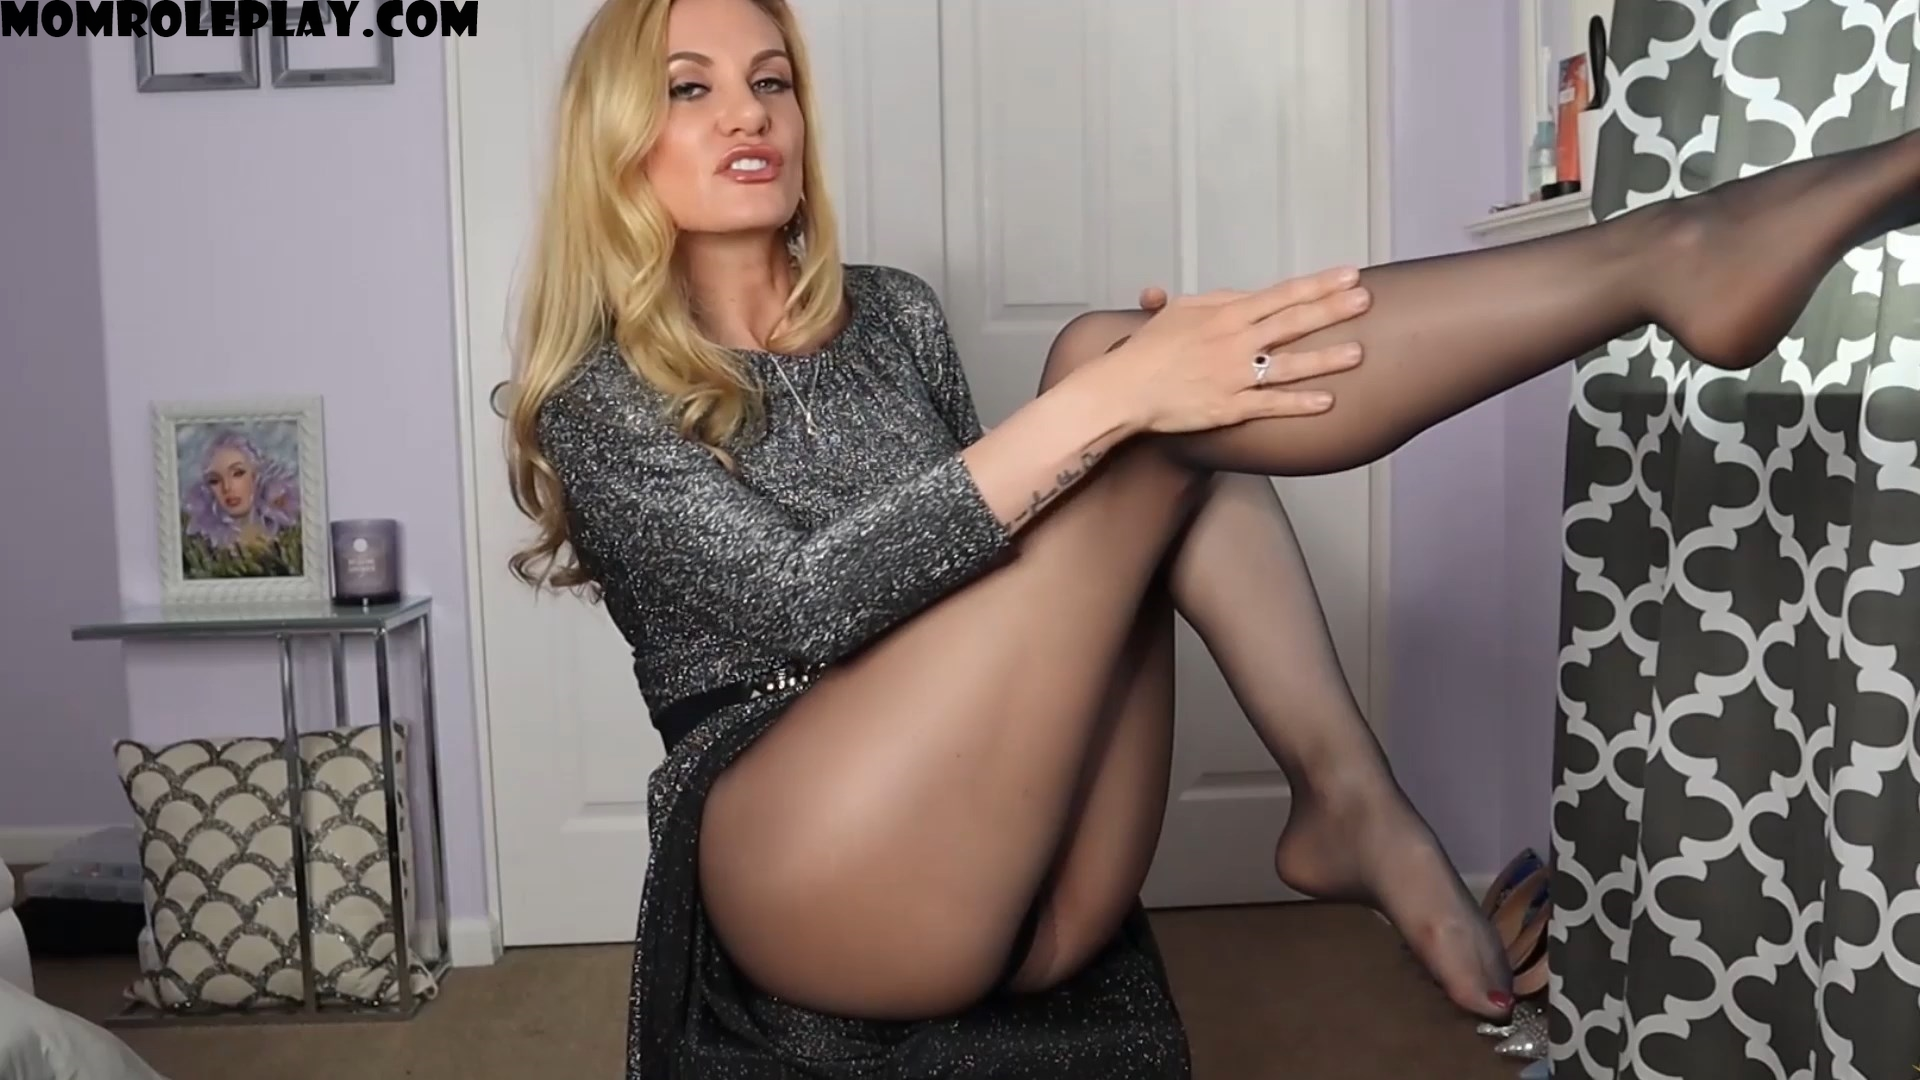 Goddess Stella Sol - A Playdate on Dommy Mommy Day